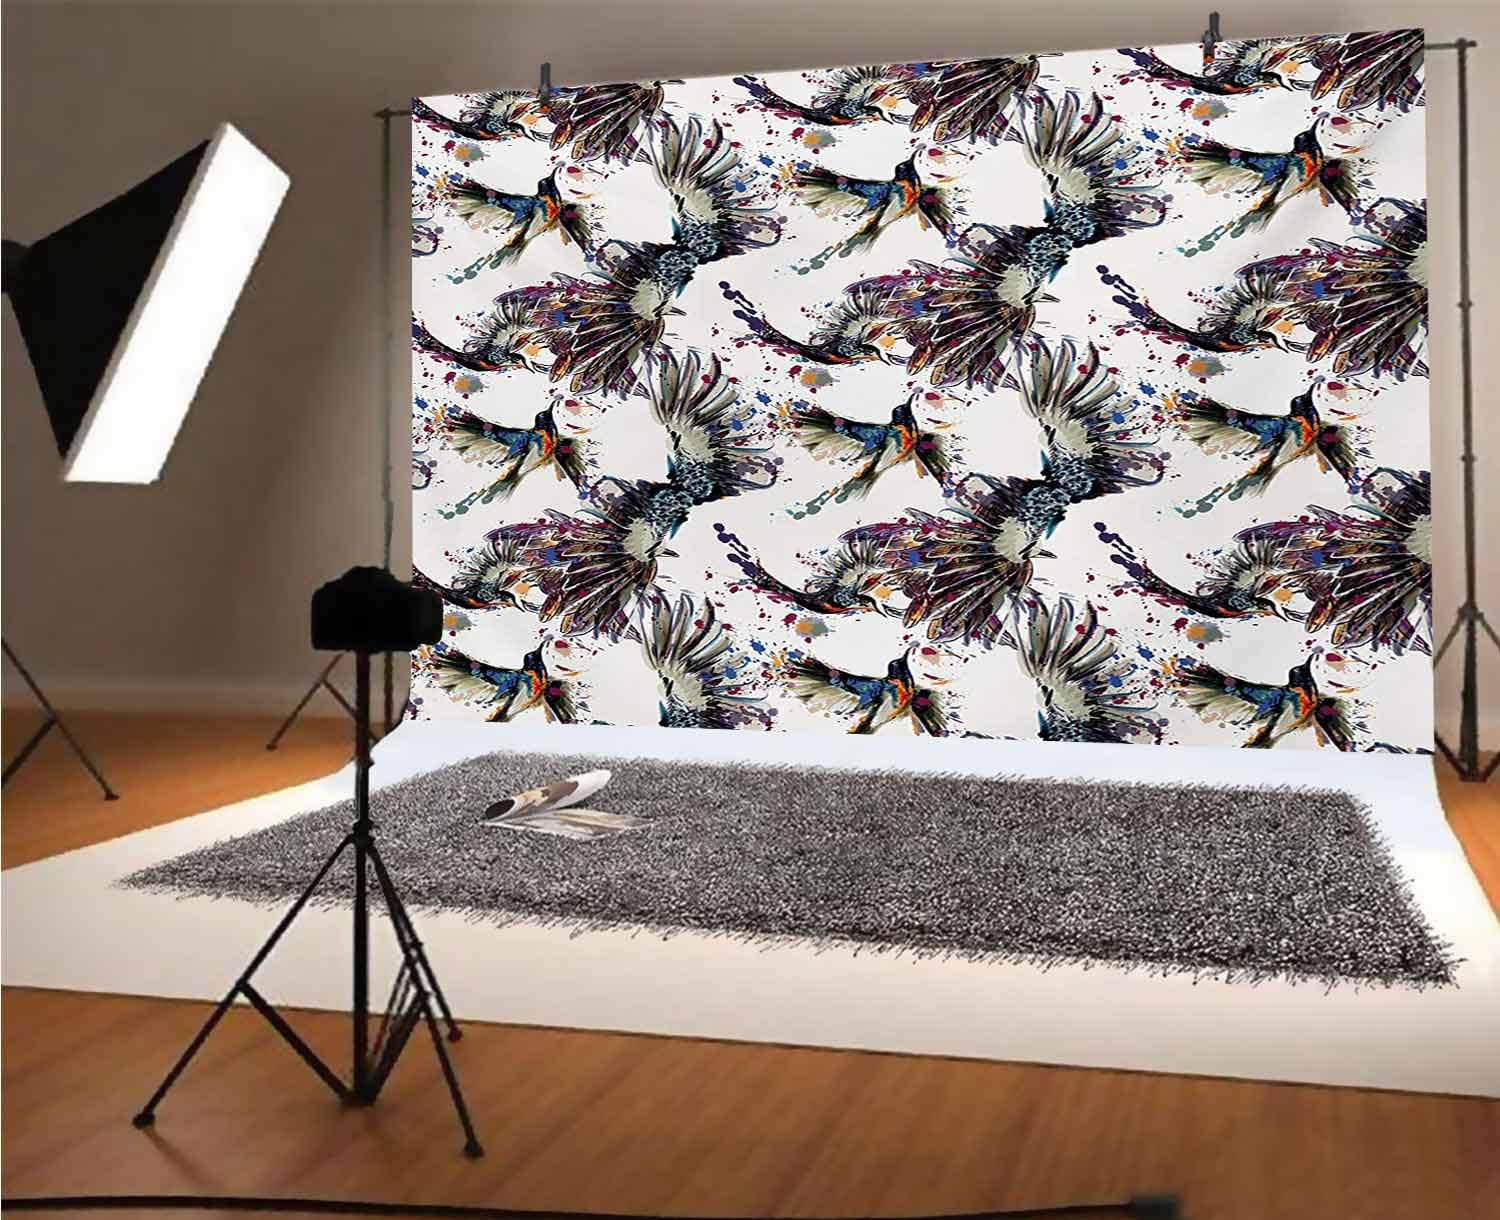 Modern 15x10 FT Vinyl Backdrop PhotographersWatercolor Paintbrush Stylized Lemons with Murky Hazy Effects Artful Image Background for Party Home Decor Outdoorsy Theme Shoot Props